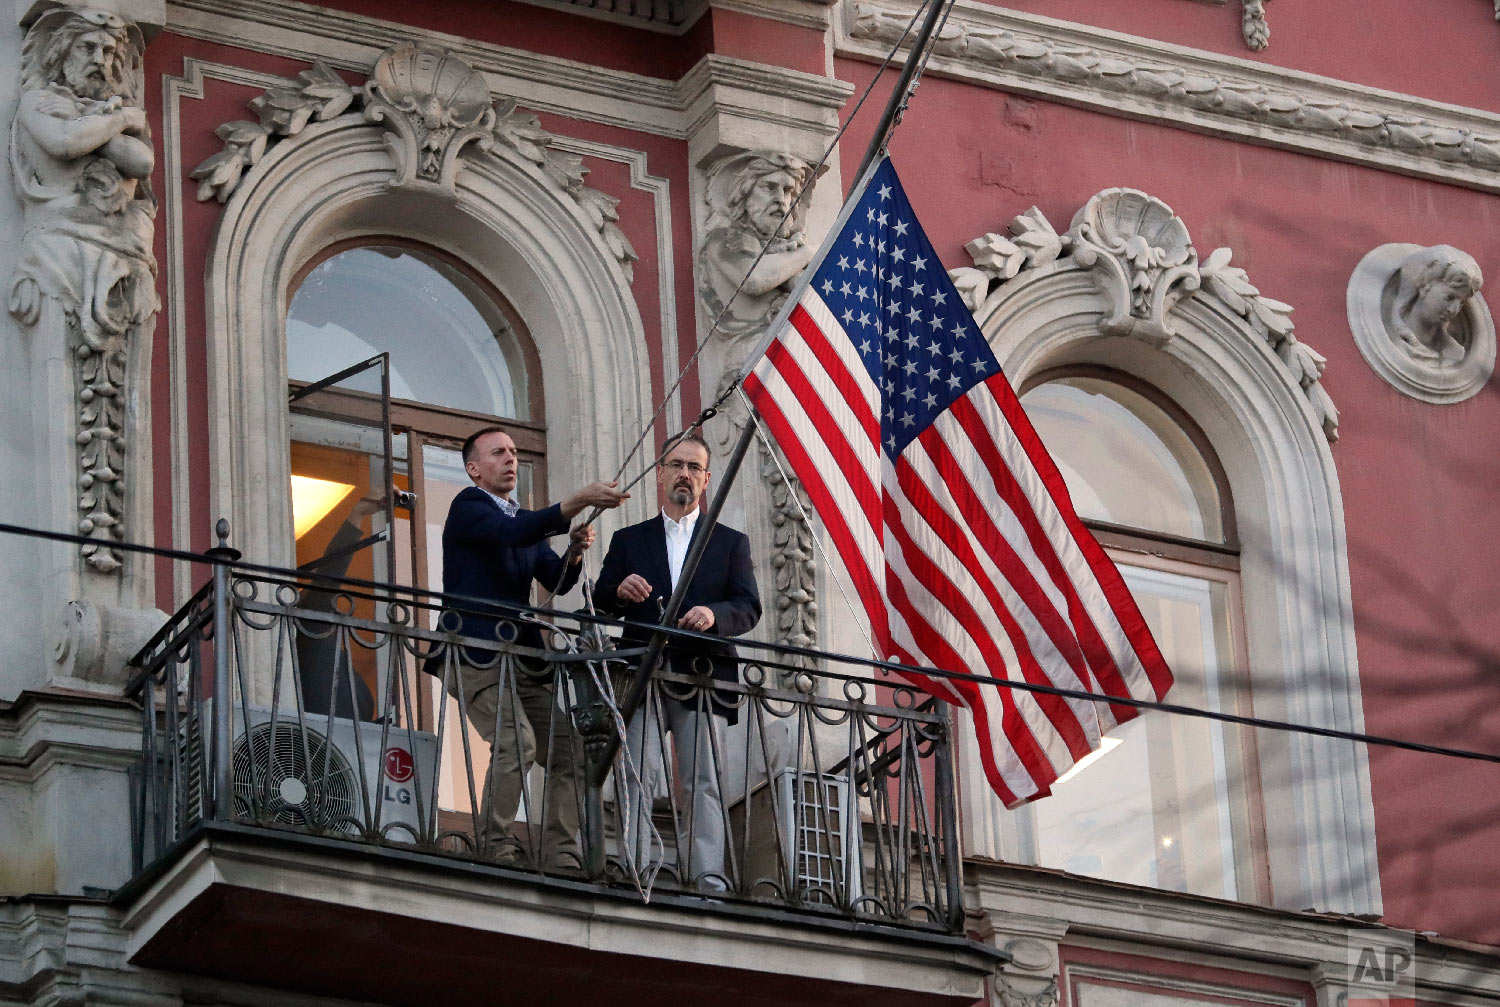 Employees at the U.S. consulate in St. Petersburg, Russia, remove the U.S flag on March 31, 2018, after Russia announced it was closing the consulate and expelling more than 150 diplomats, including 60 Americans. The move was in retaliation for the wave of Western expulsions of Russian diplomats over the poisoning of an ex-spy and his daughter in Britain. (AP Photo/Dmitri Lovetsky)